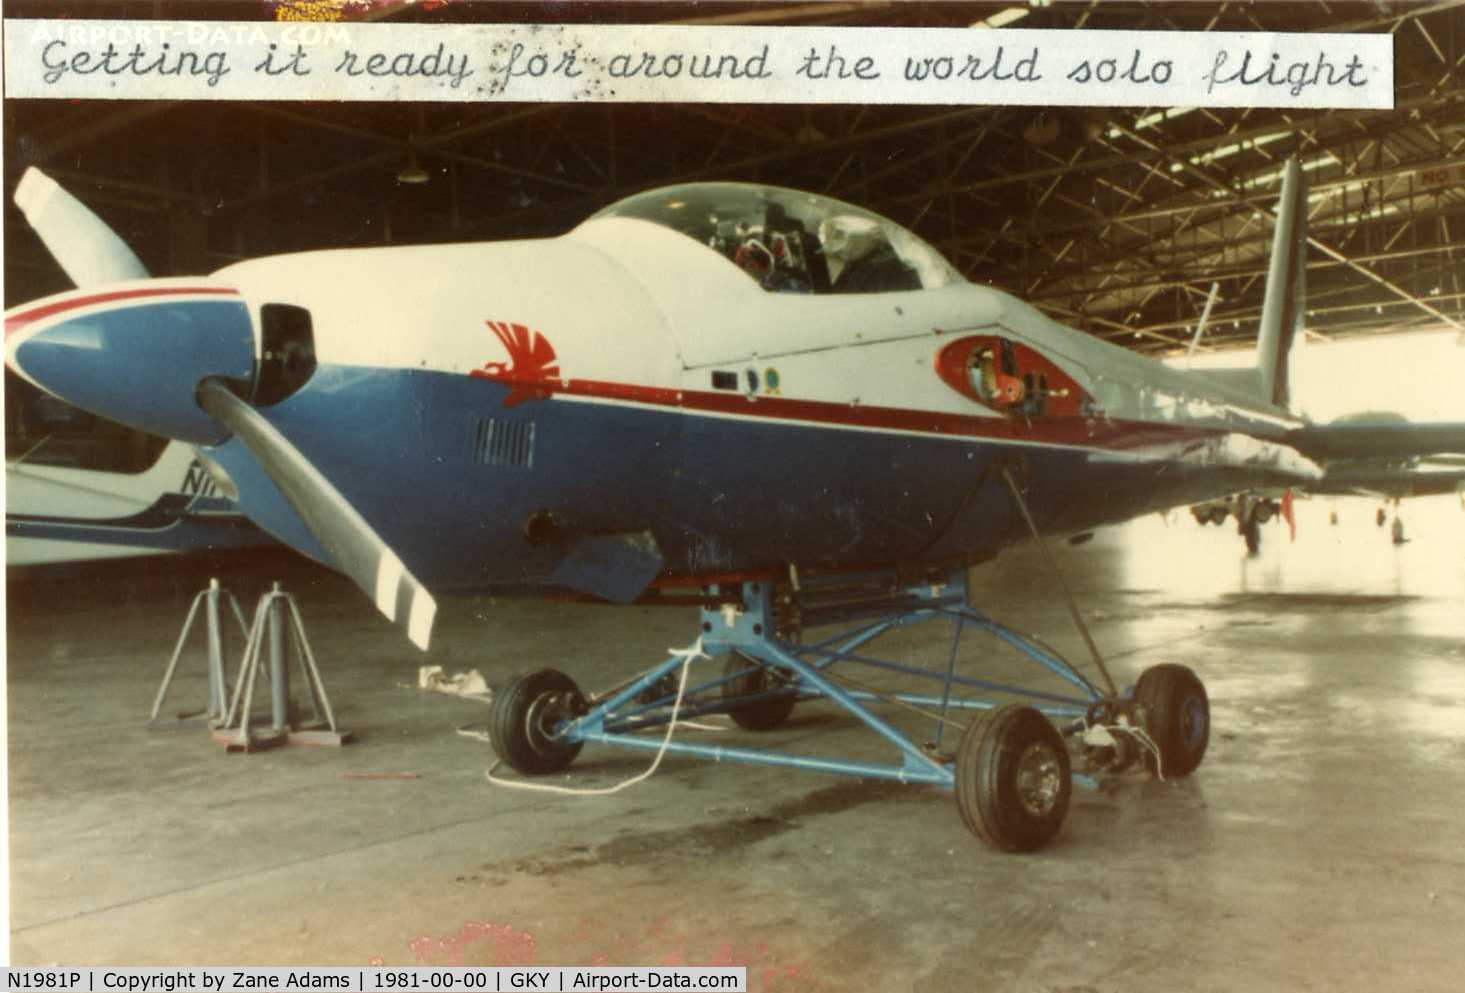 N1981P, Bede BD-2 C/N 01, World Record holder - http://records.fai.org/general_aviation/aircraft.asp?id=872